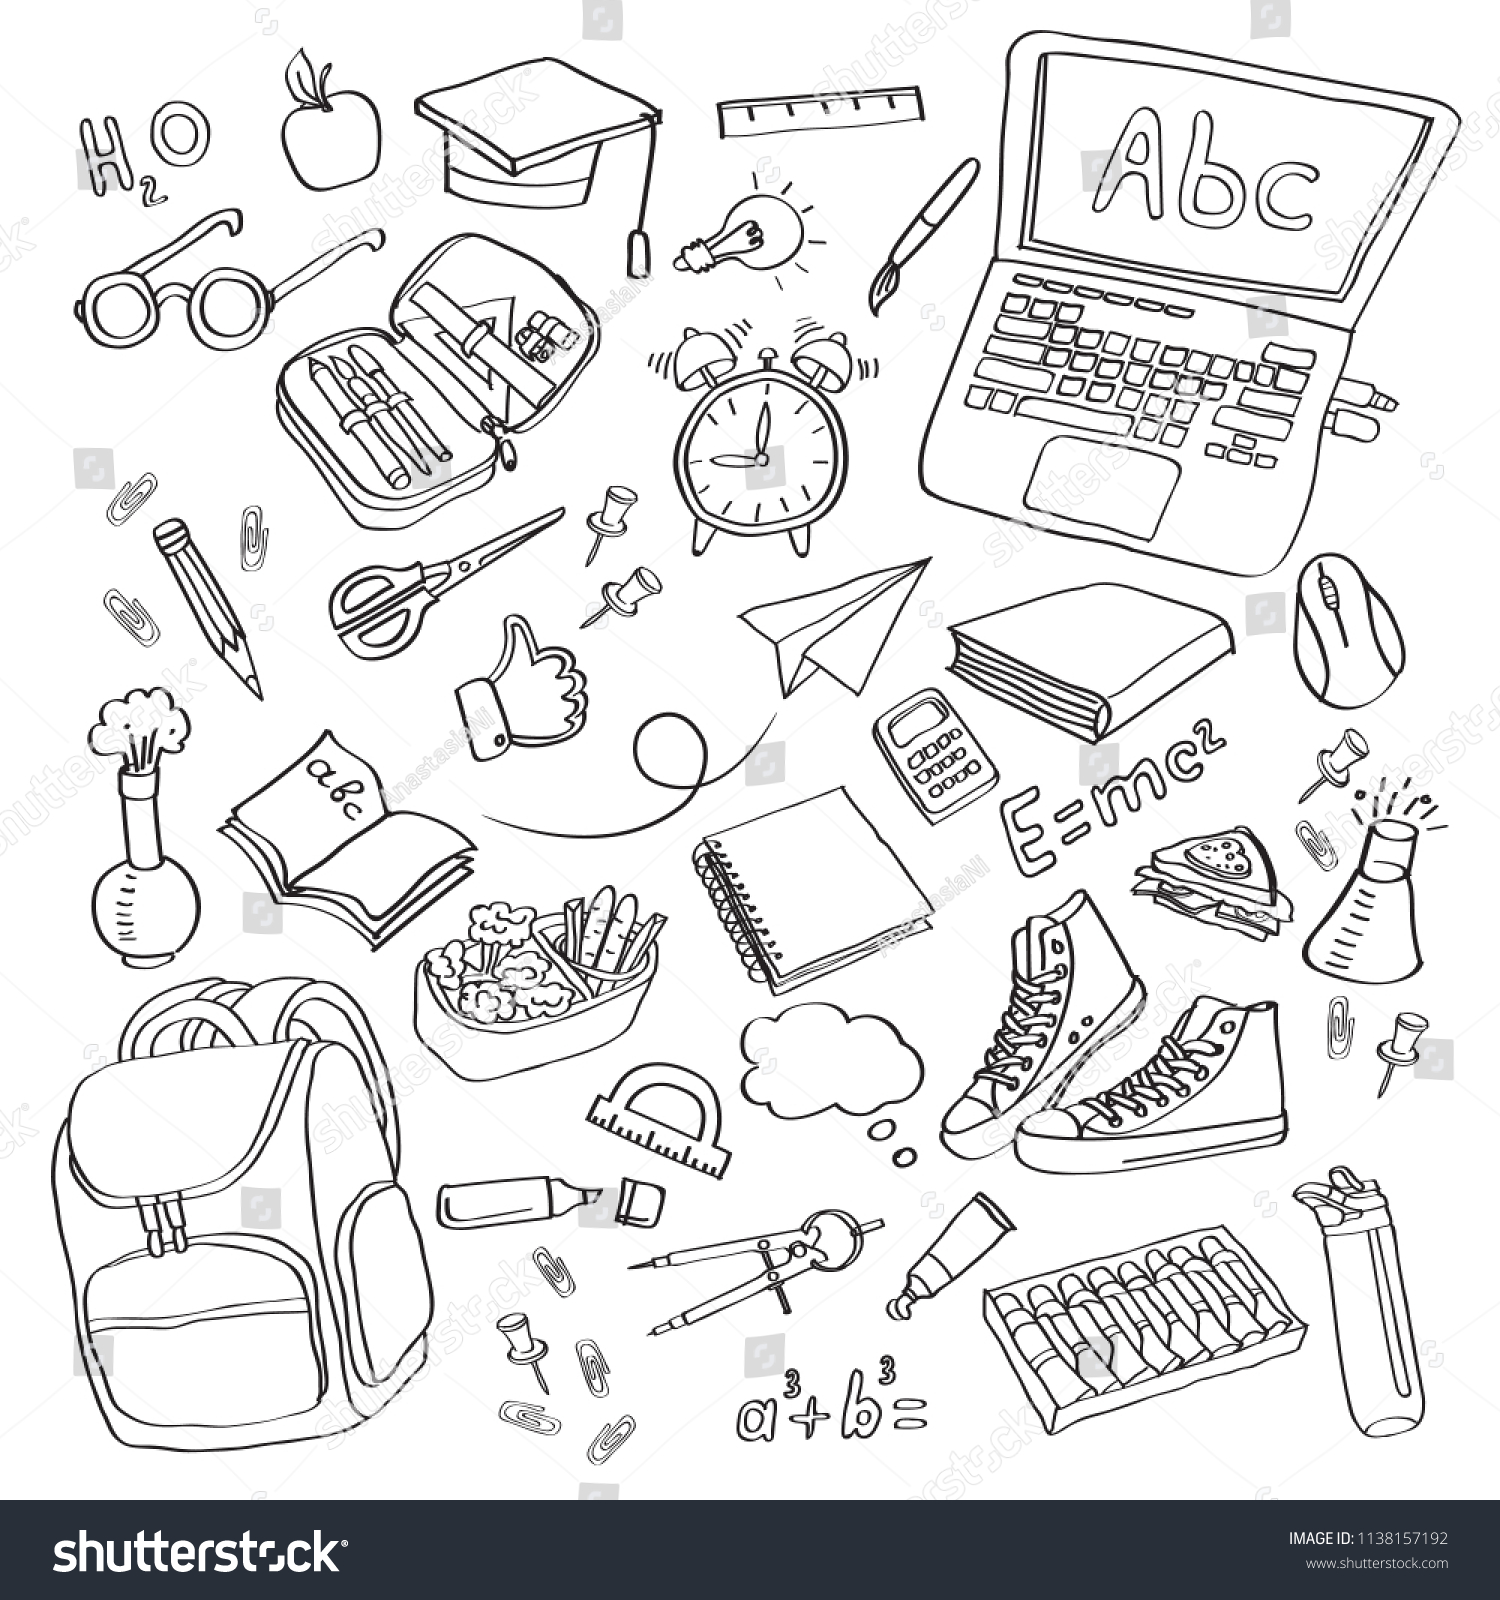 hight resolution of school clipart vector doodle school icons symbols back to school background sketch drawing hand white